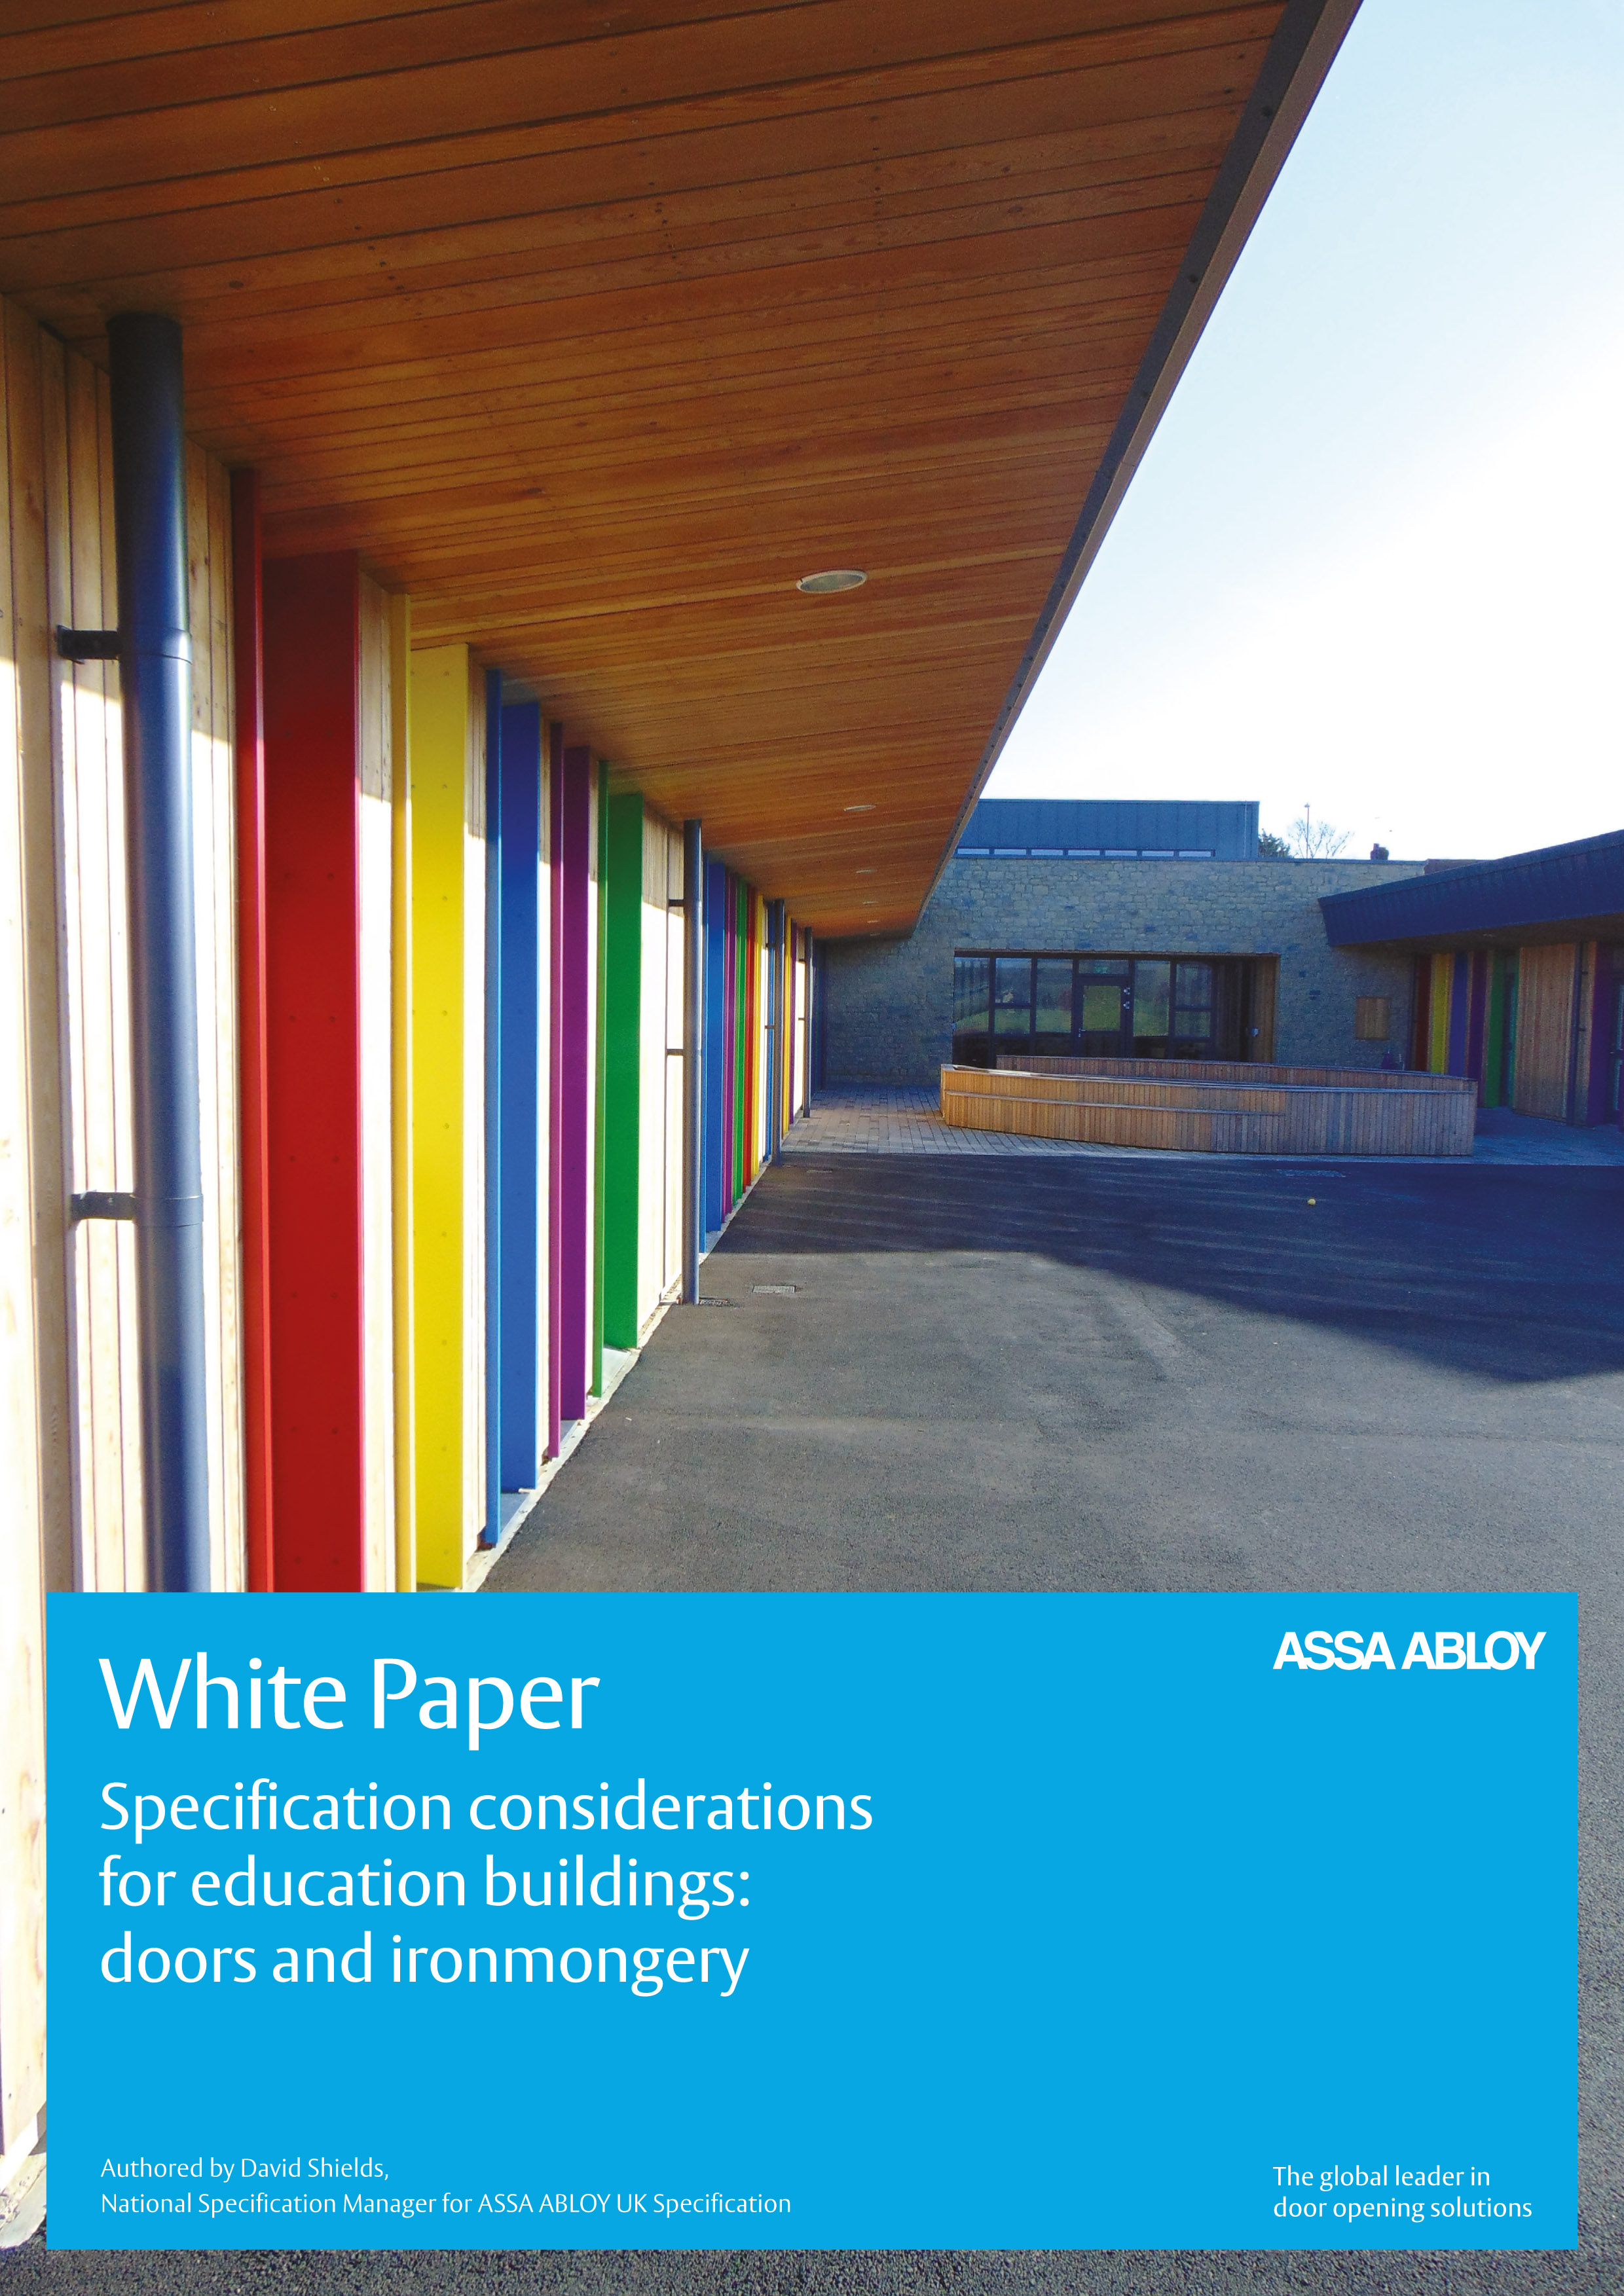 Whitepaper on specification considerations for education settings